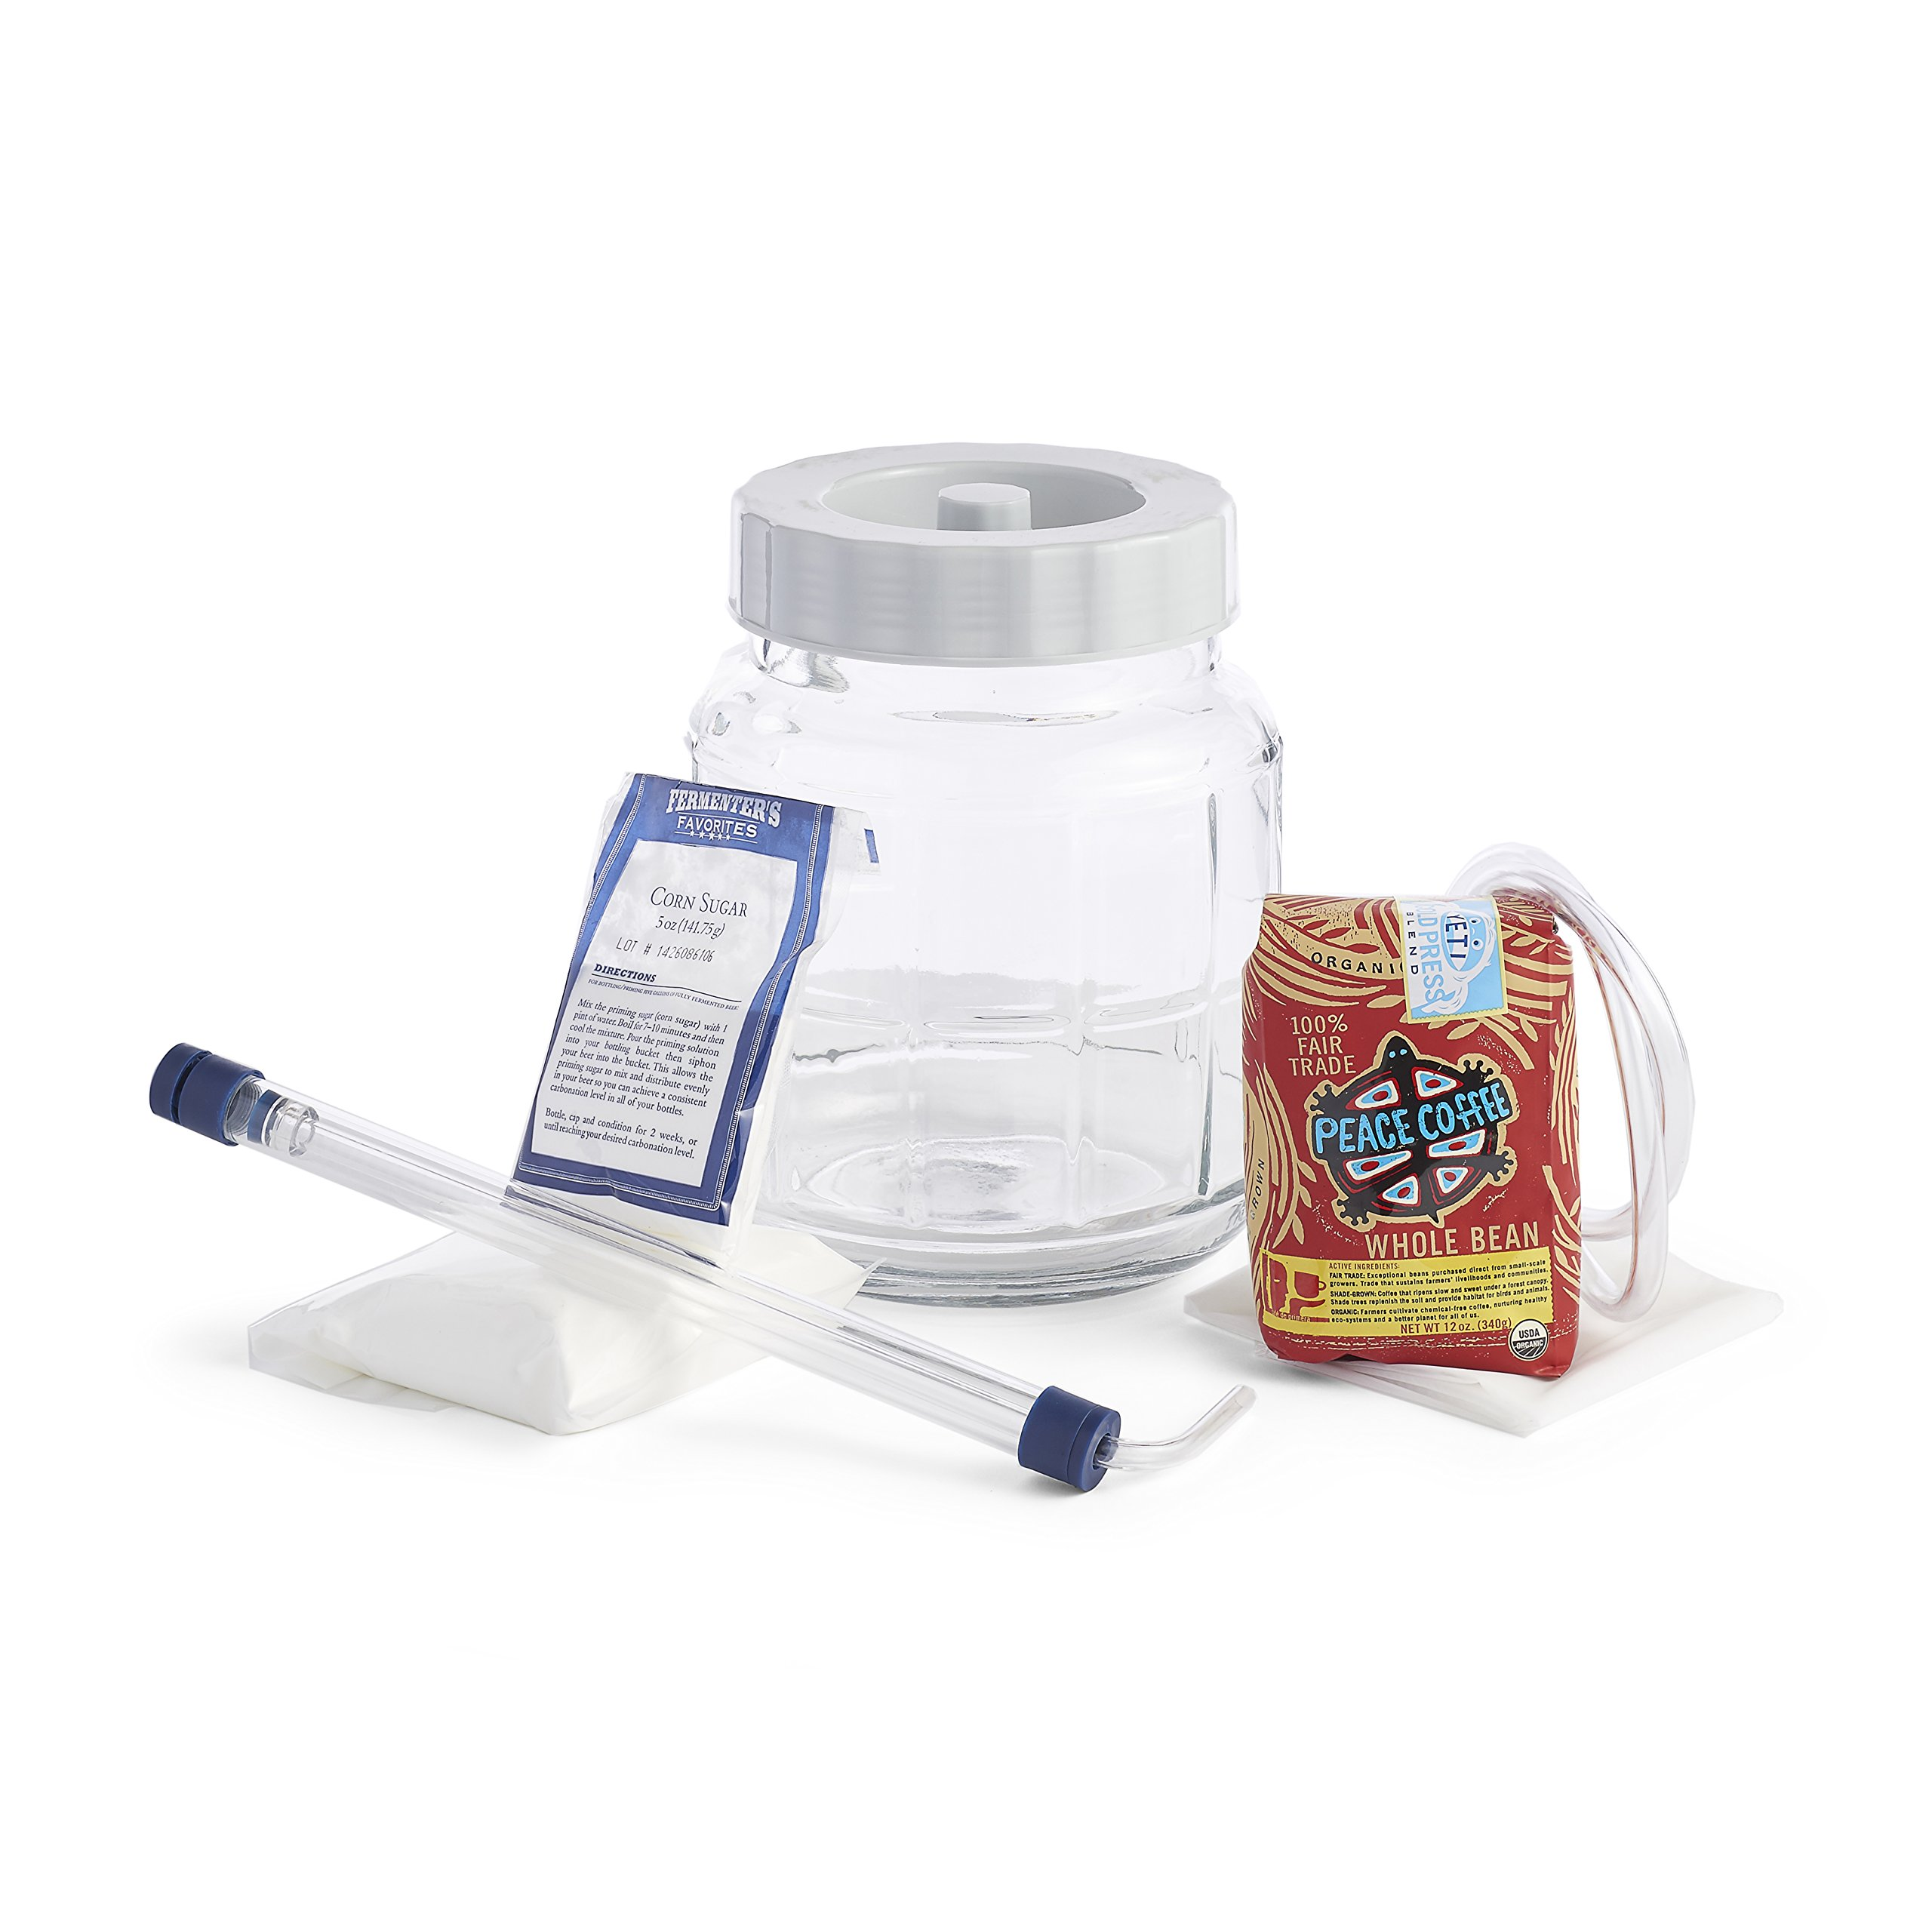 Jacked-Up Jump Start Cold Press Coffee Making System Kit With Little Big Mouth Bubbler and Auto-Siphon For Cold Brewed Coffee At Home